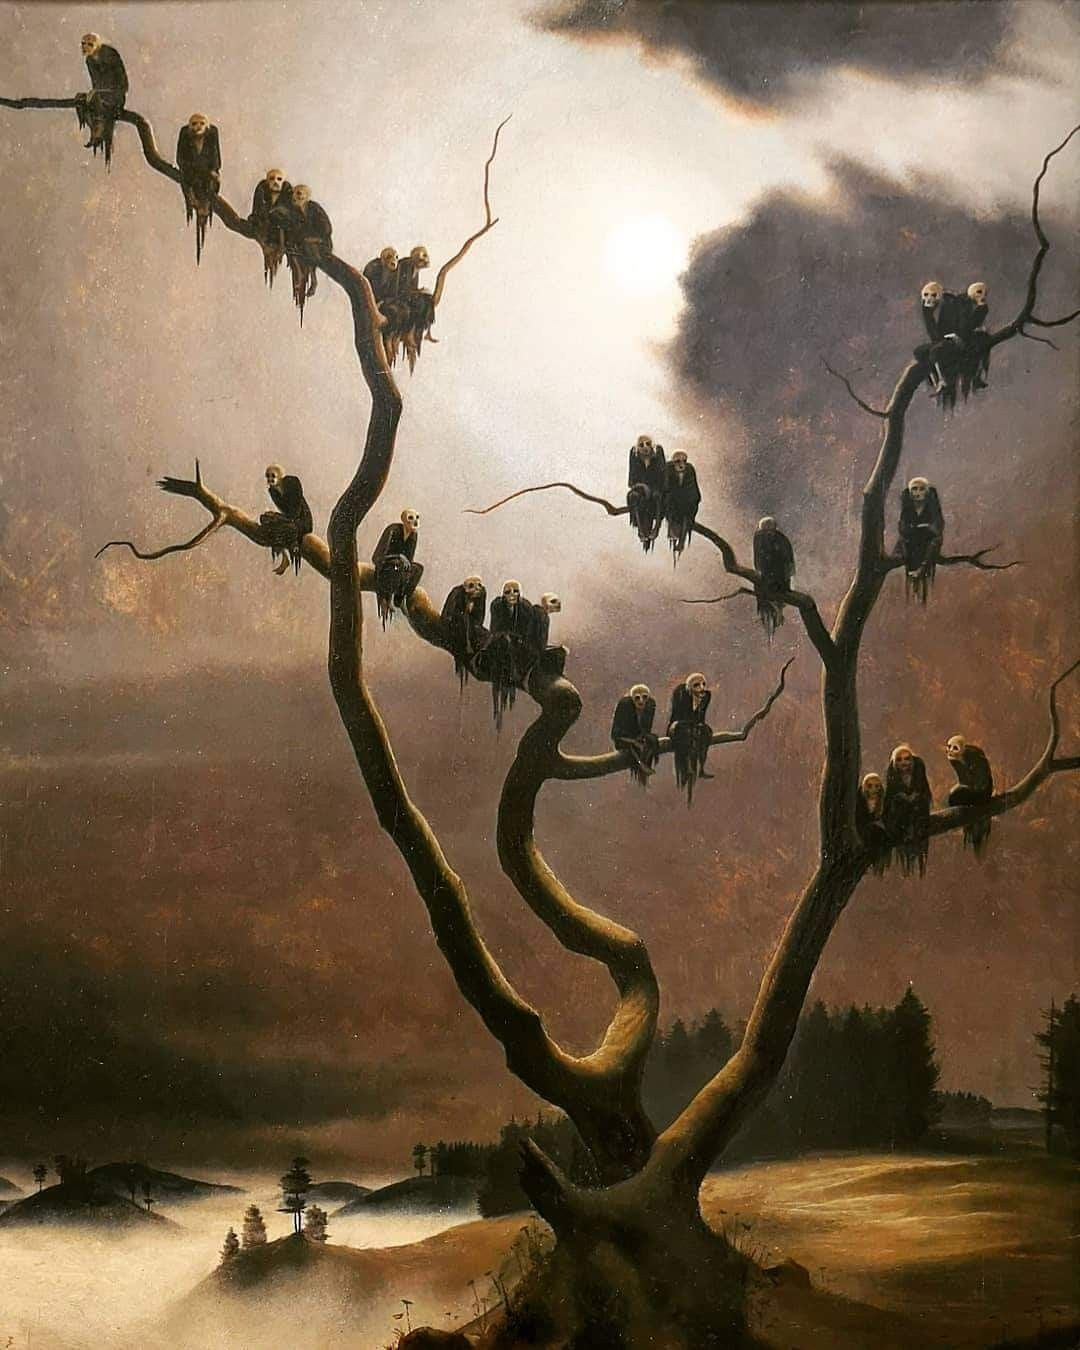 Ghosts on a Tree